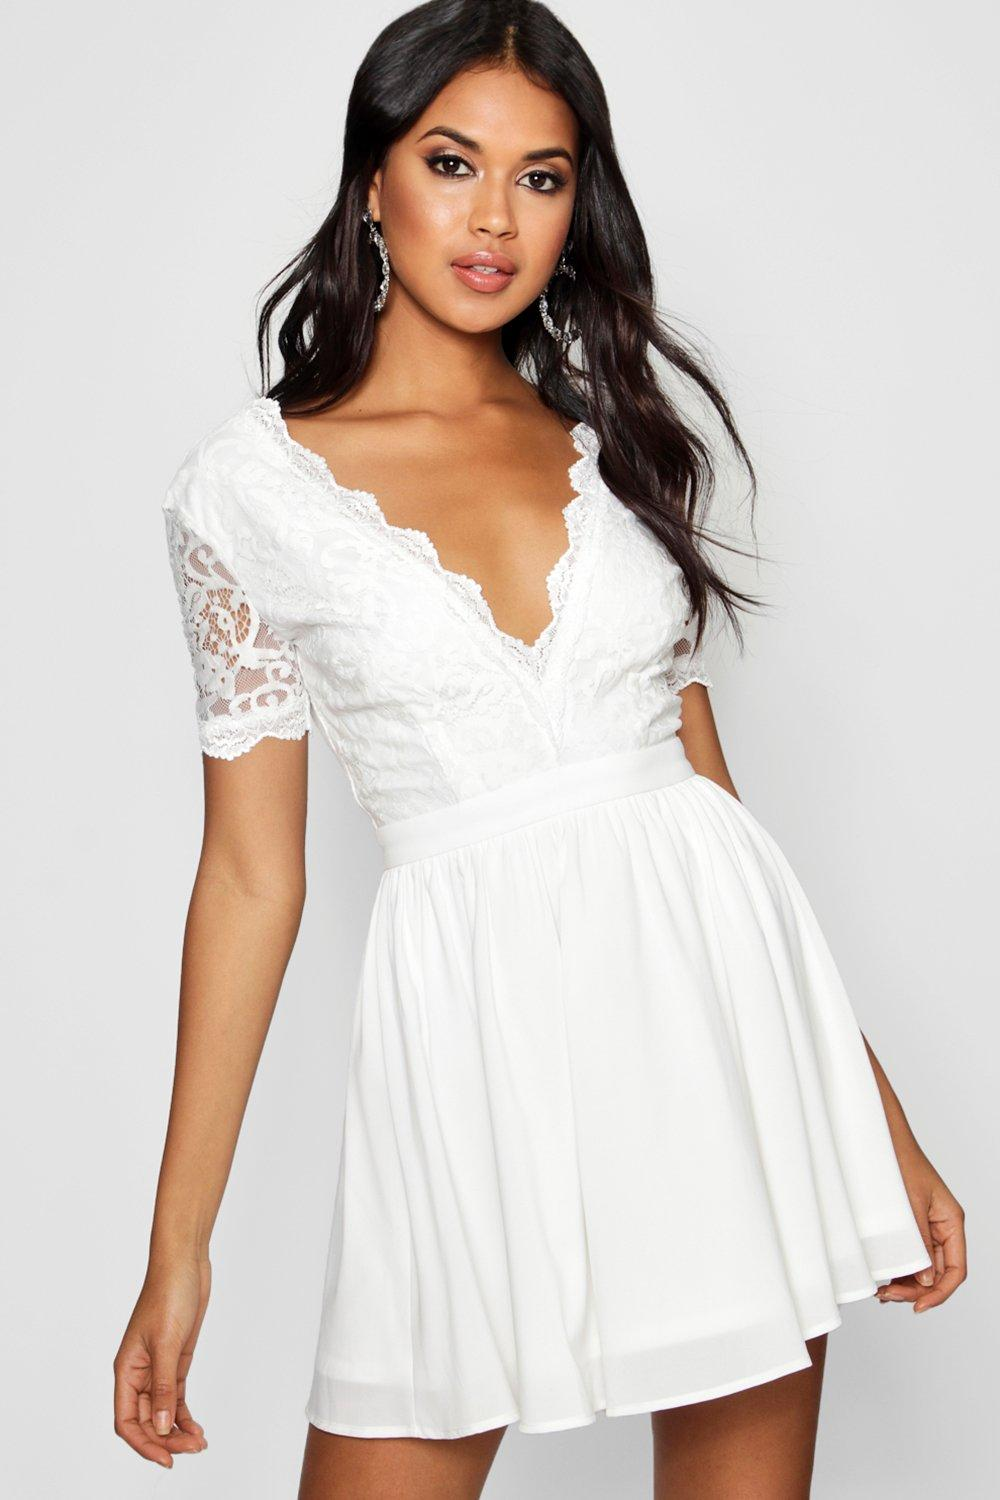 da36783301b0 Womens Ivory Lace Top Skater Dress. Hover to zoom